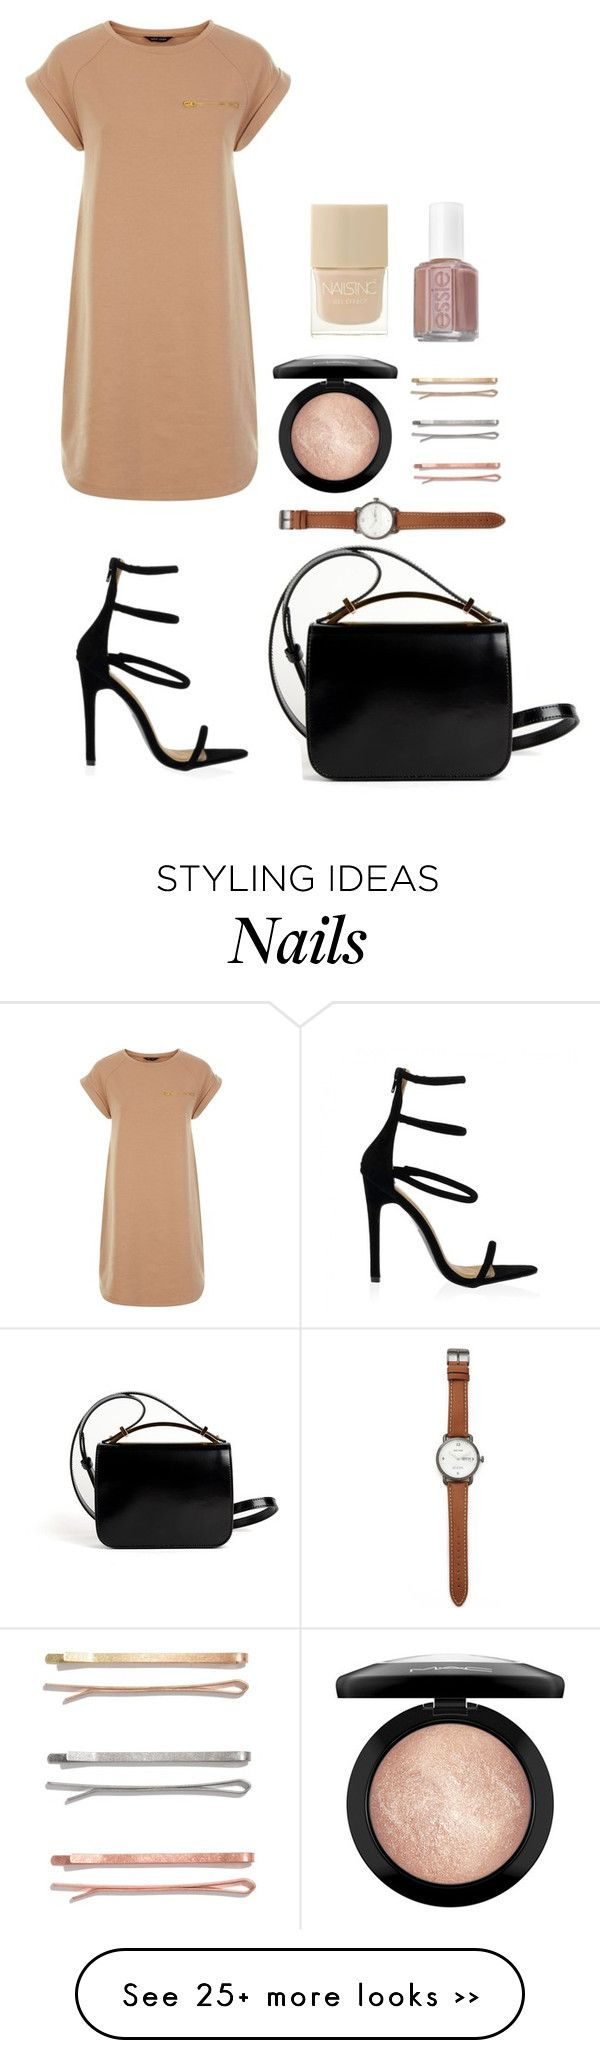 """""""Two"""" by honeyat on Polyvore featuring Givenchy, Madewell, MAC Cosmetics, Jack Spade, Nails Inc. and Essie"""